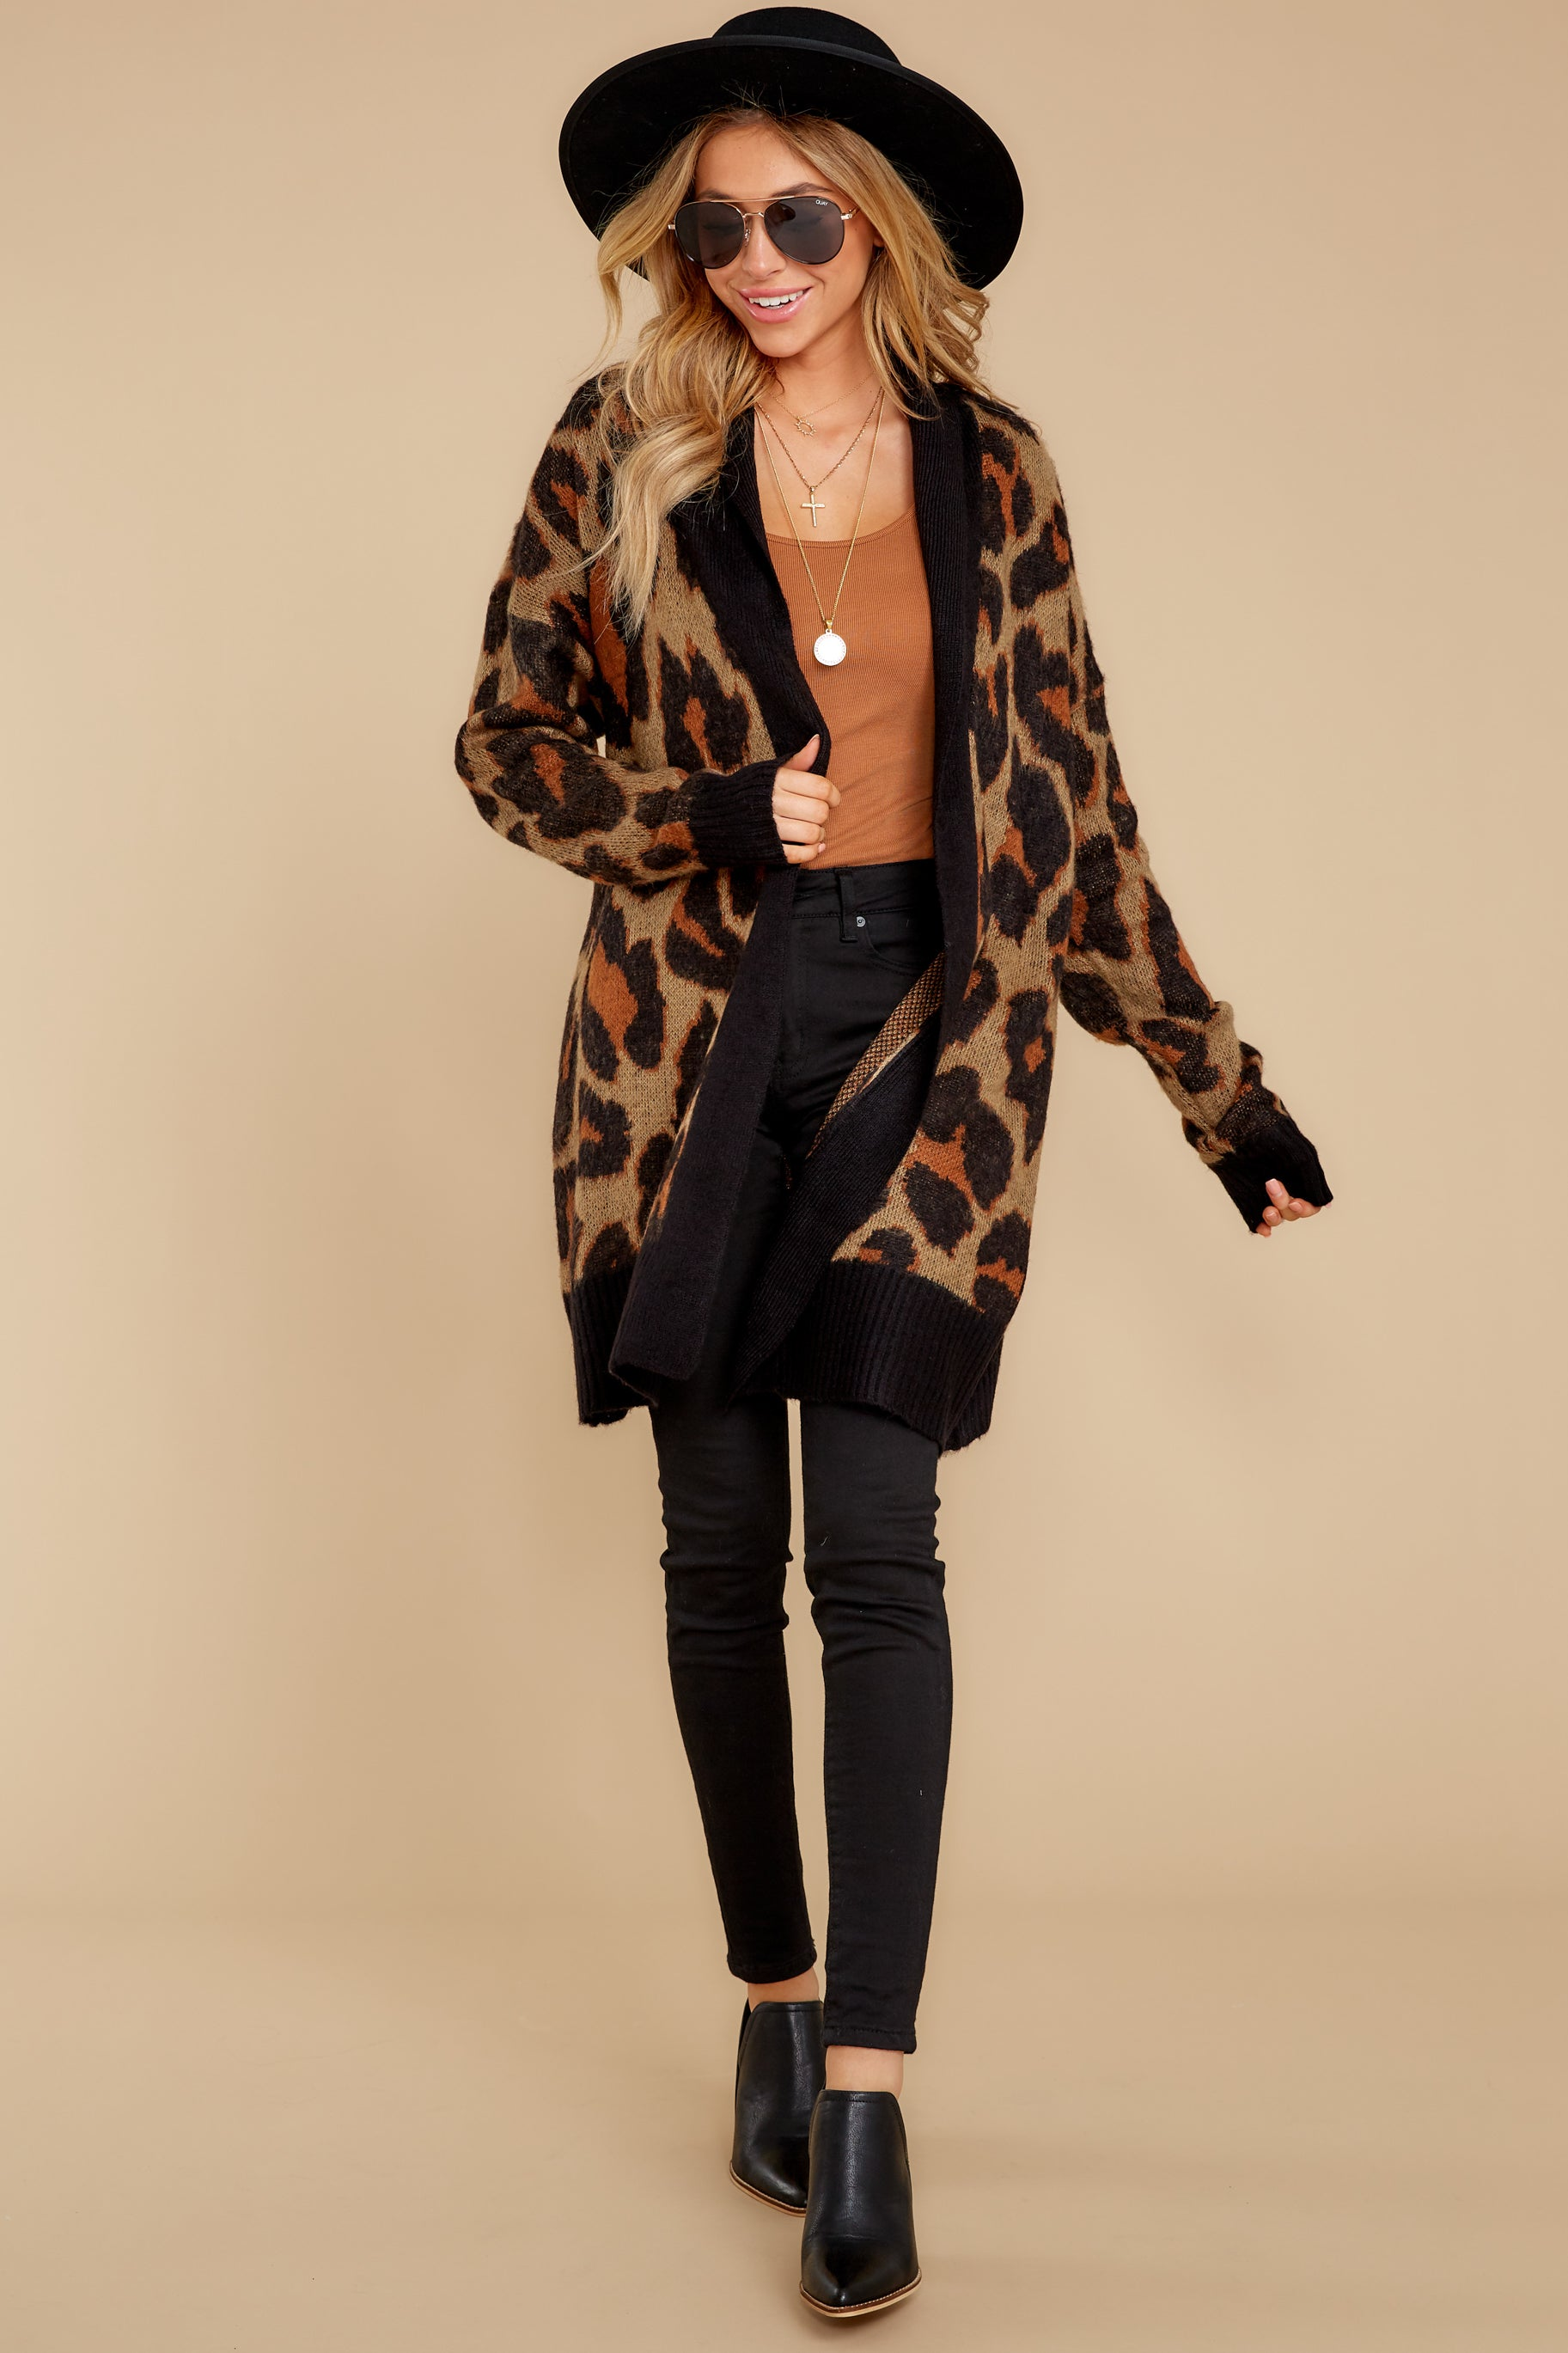 1 Fauve Oversized Leopard Print Cardigan Sweater at reddressboutique.com